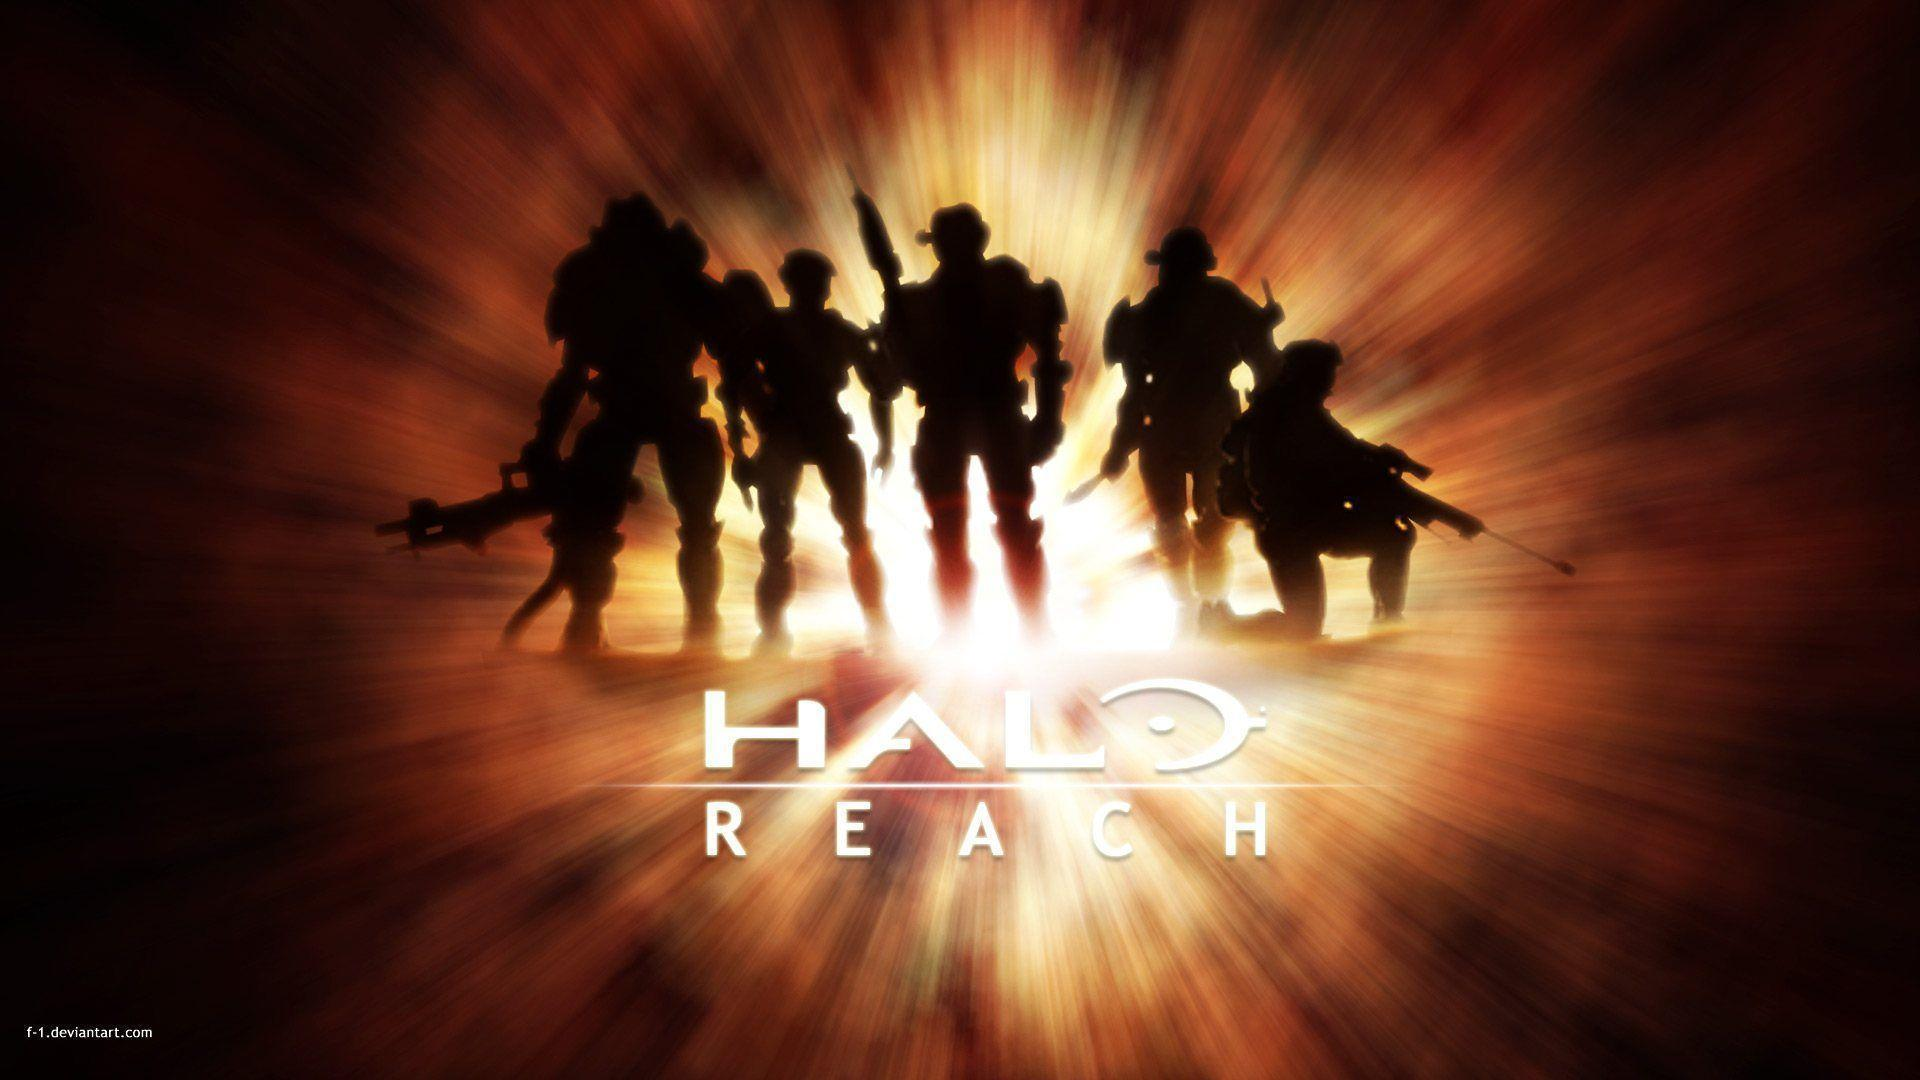 Halo Reach Wallpapers 1080p - Wallpaper Cave